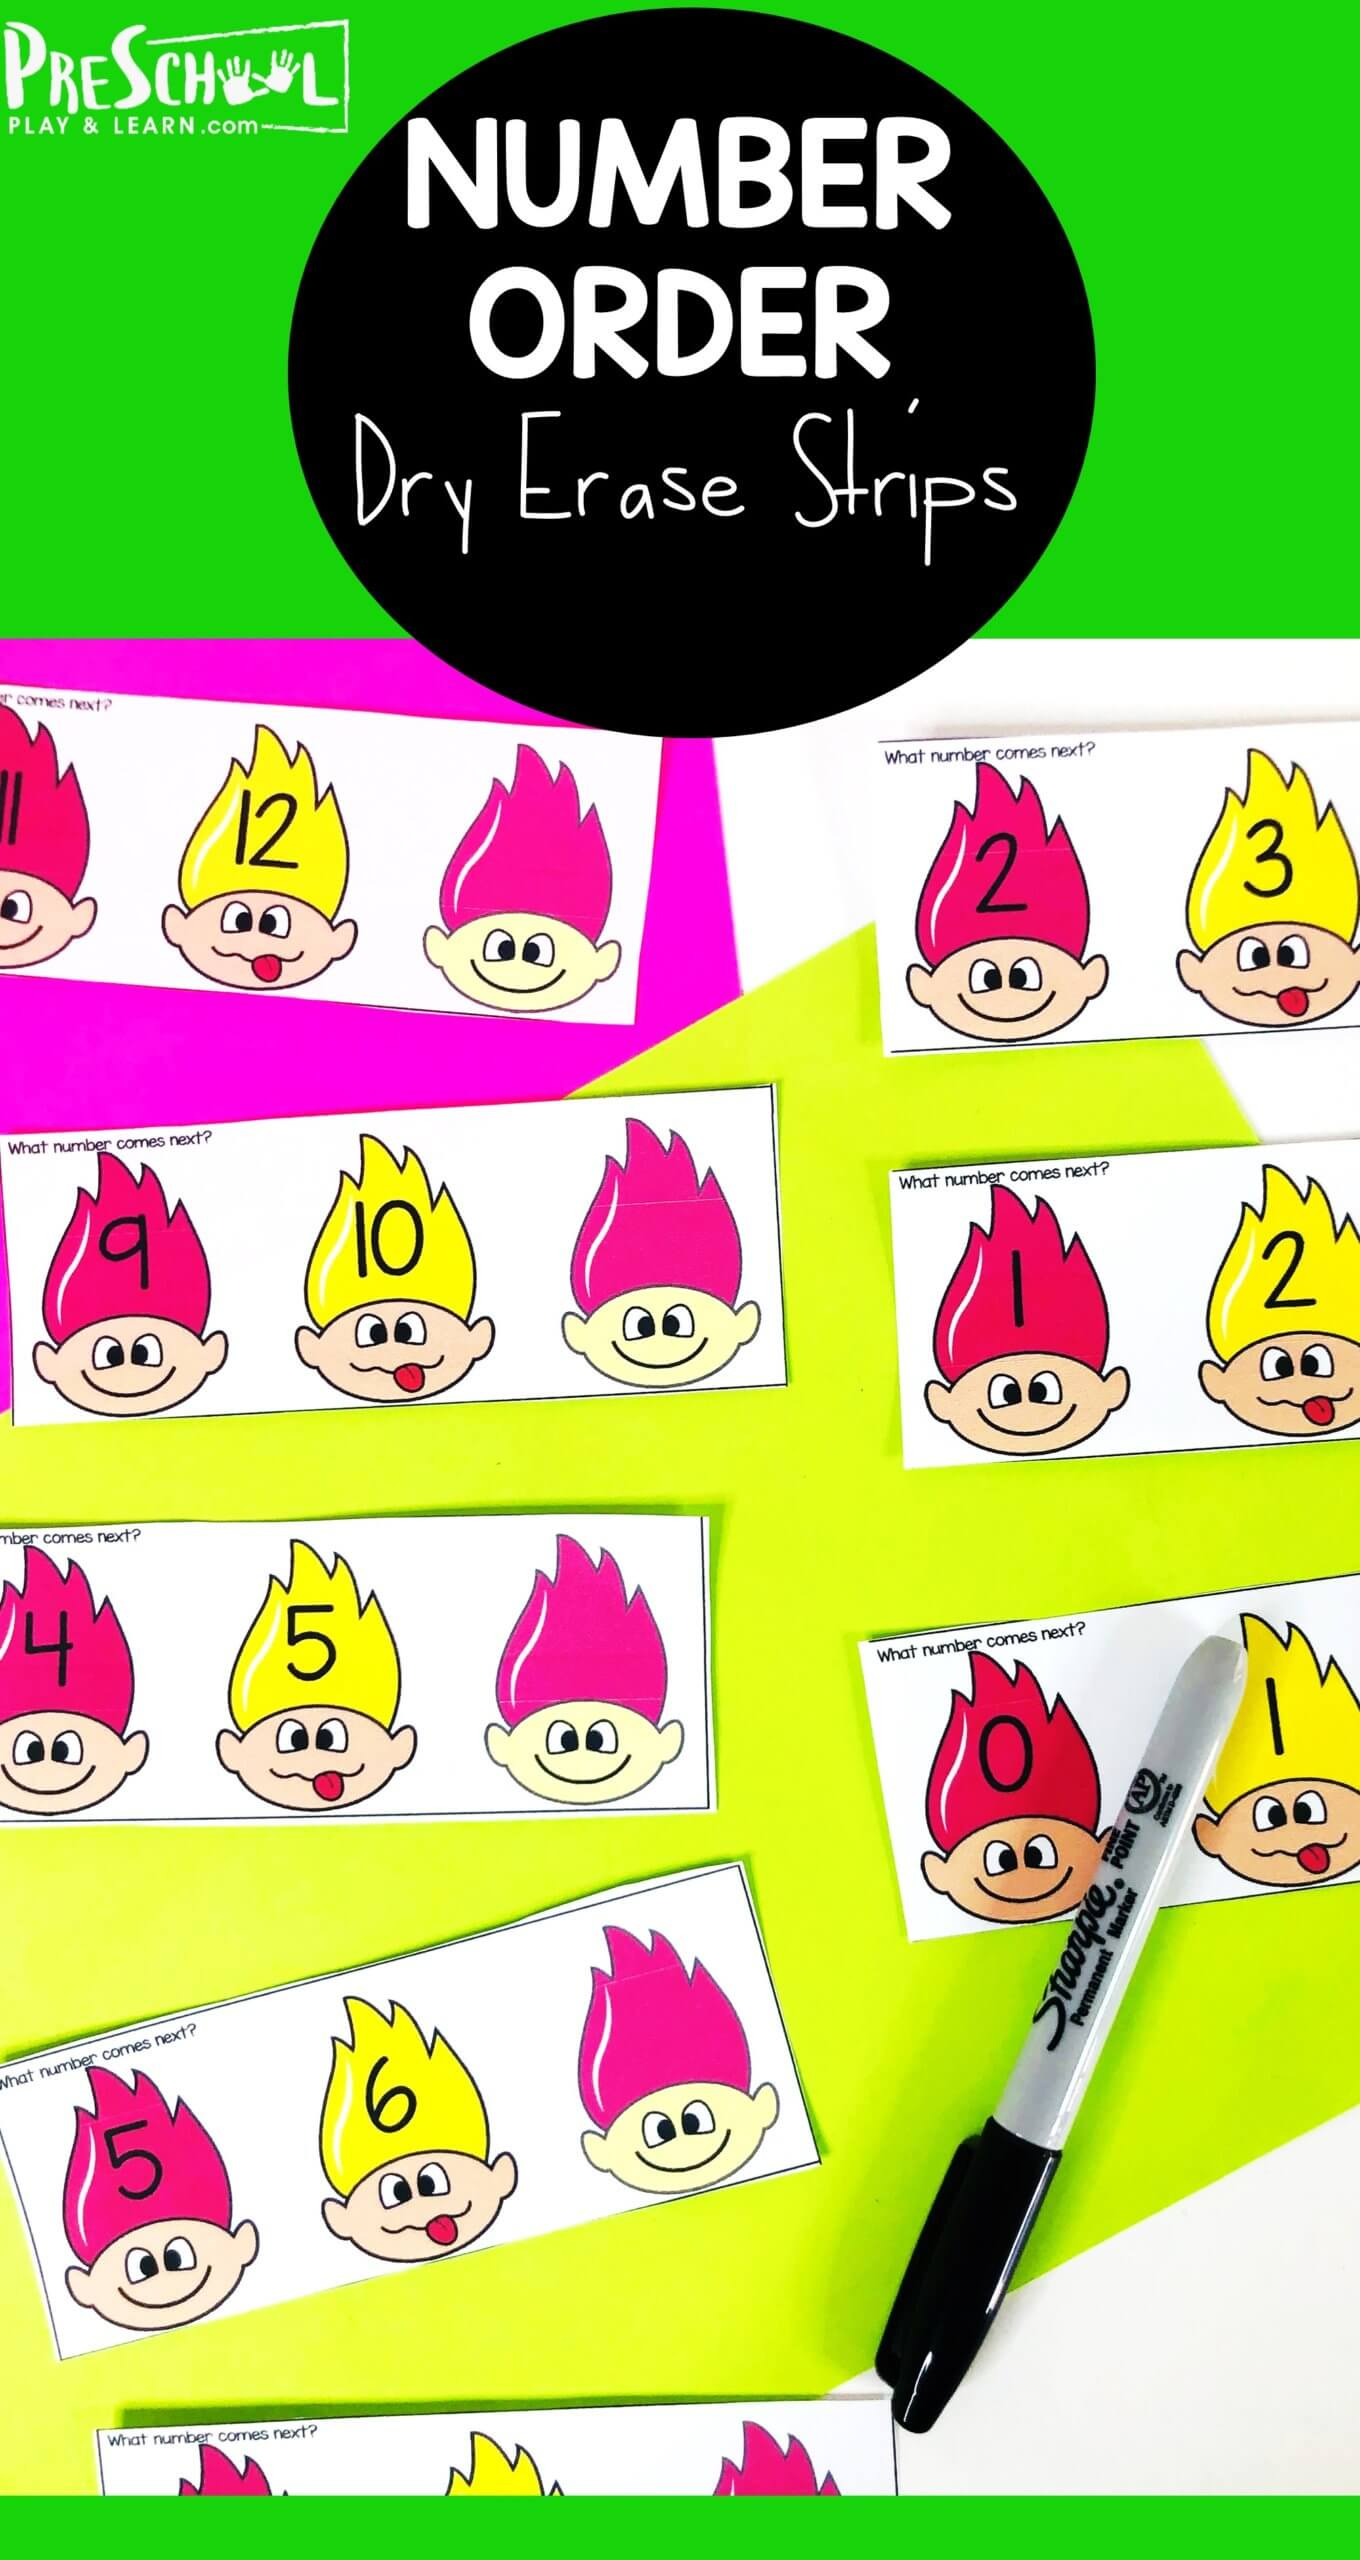 Kindergarten kids will love these troll themed counting and number order activity cards. Simply download pdf file with trolls printable for a fun number sequencing game and you can reinforce number order with preschool, pre-k, kindergarten, and first grade students. These cards are versatile and can be used in a number of ways for kids to review what comes before and what comes next. The kids will enjoy practicing number order and number identification in a  fun and hands-on way using erase markers.